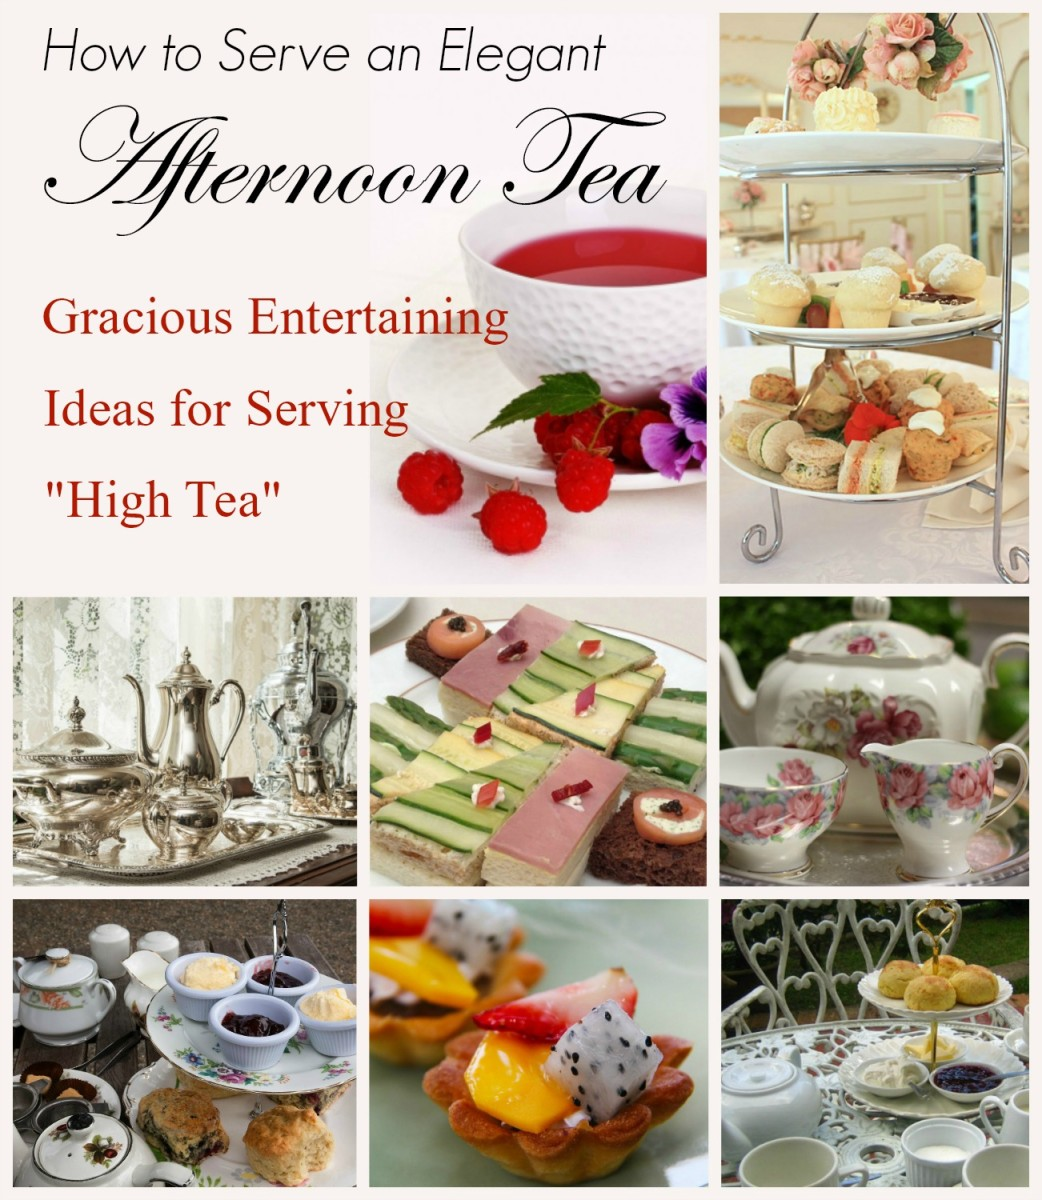 How to Serve an Elegant Afternoon Tea